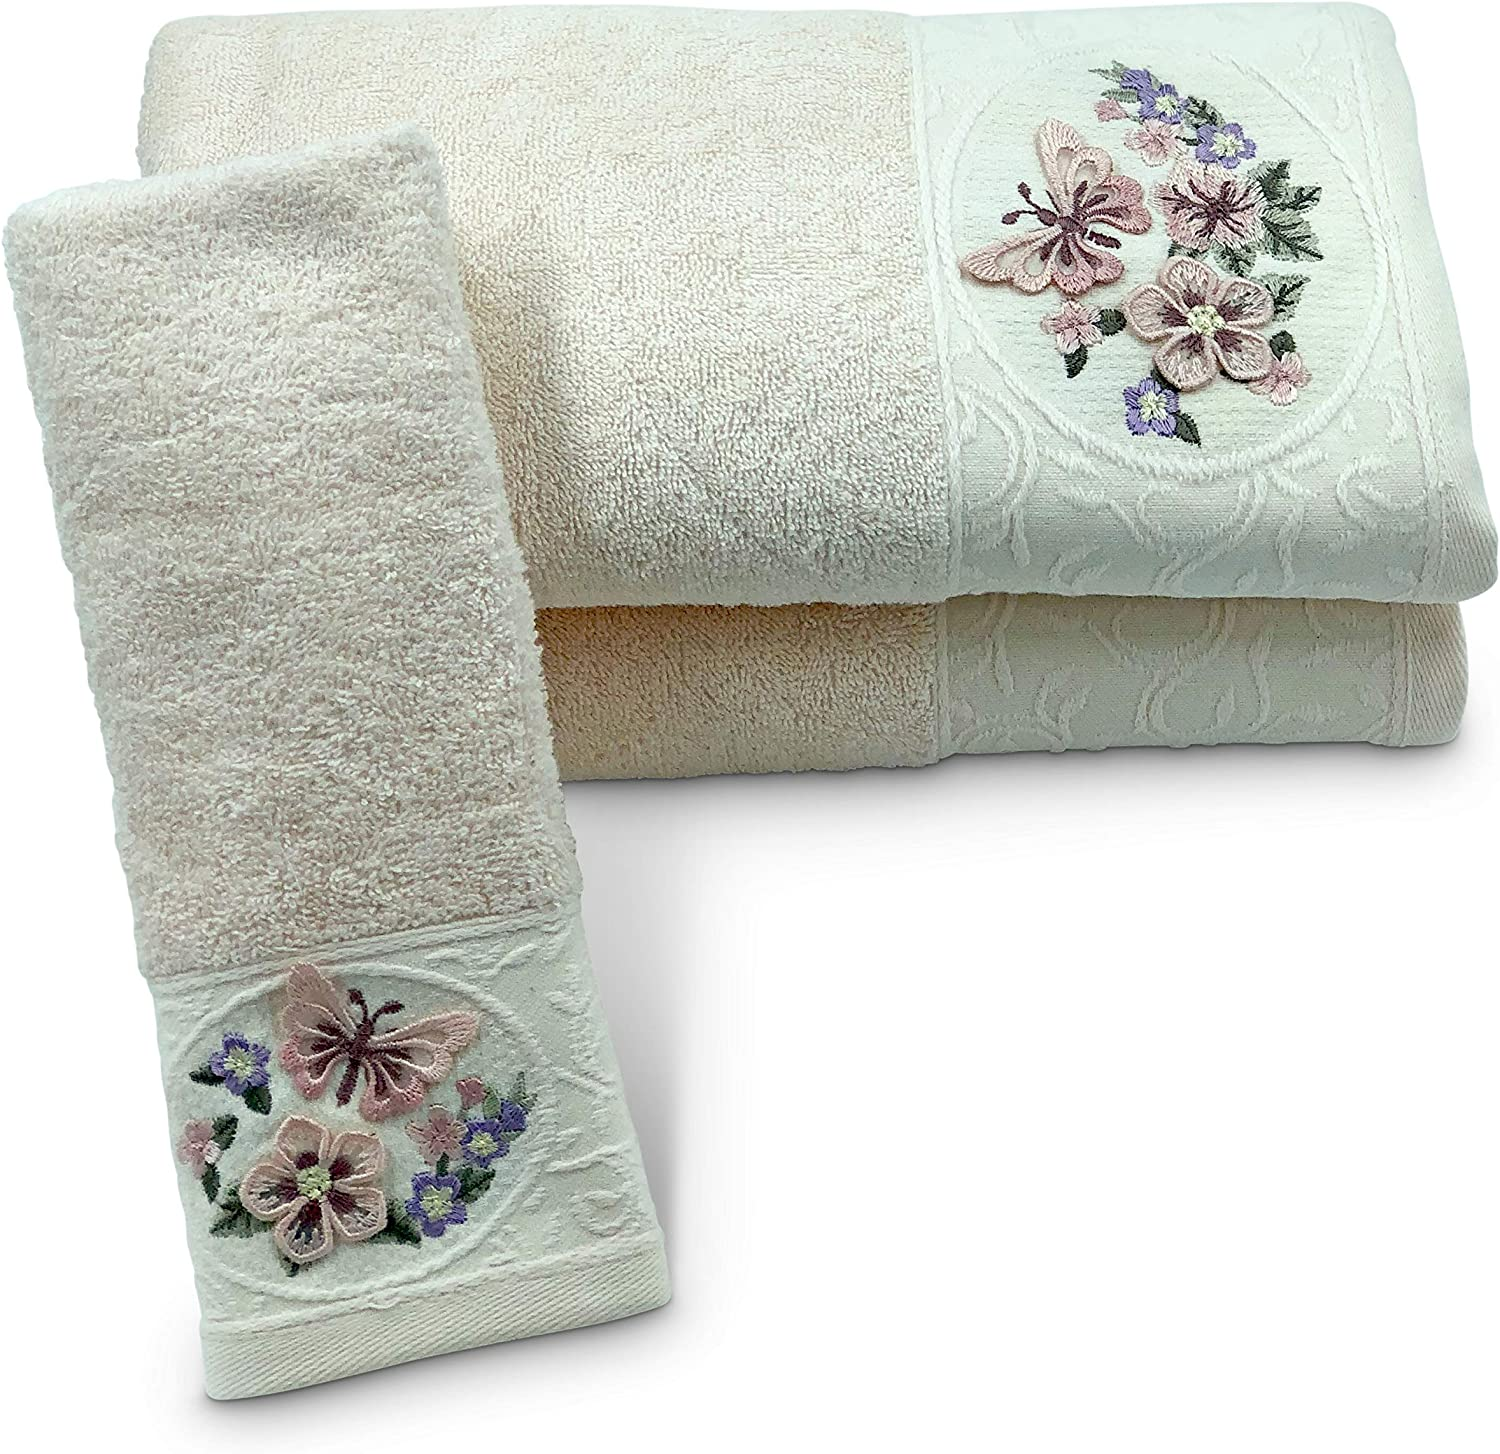 Aylinn Spring Butterfly Towel Set – 2 Pieces Ultra Soft 50x90 Hand Towel -1-Piece 30x50 Kitchen Towel – Elegant- Modern-Luxurious-Powder Ecru